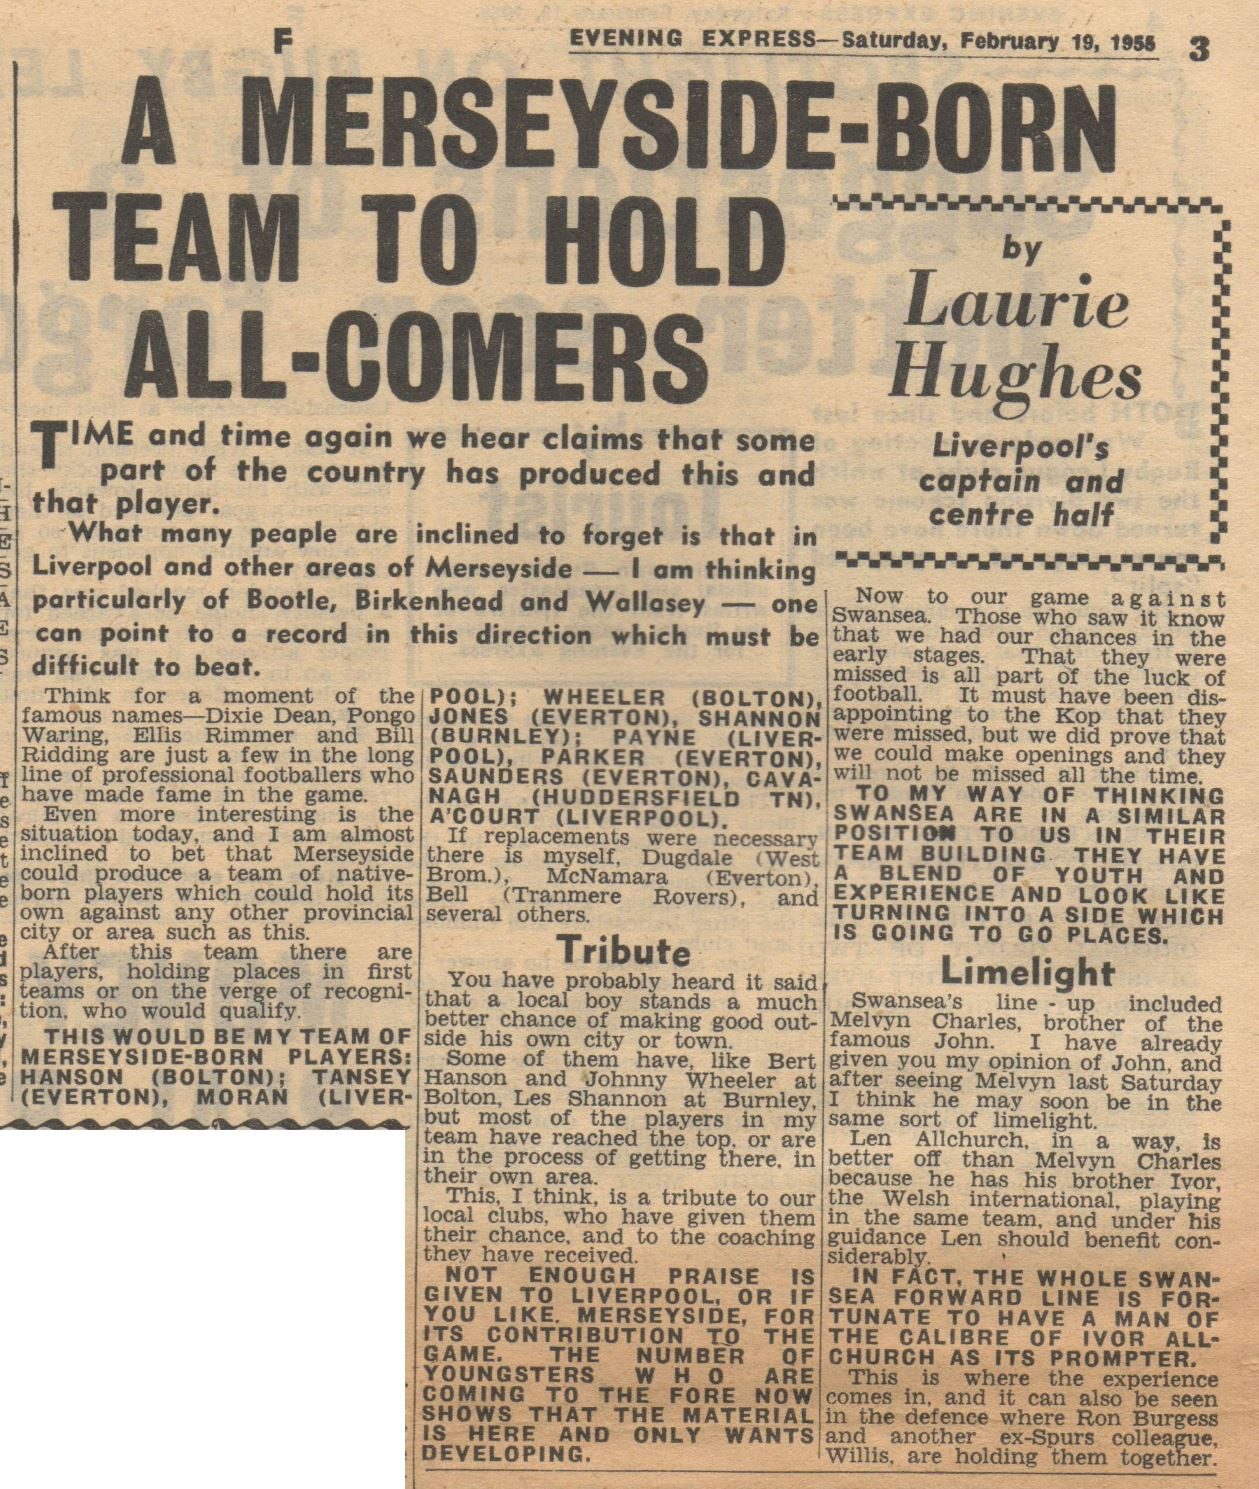 A Merseyside team to to hold all comers - 19 February 1955